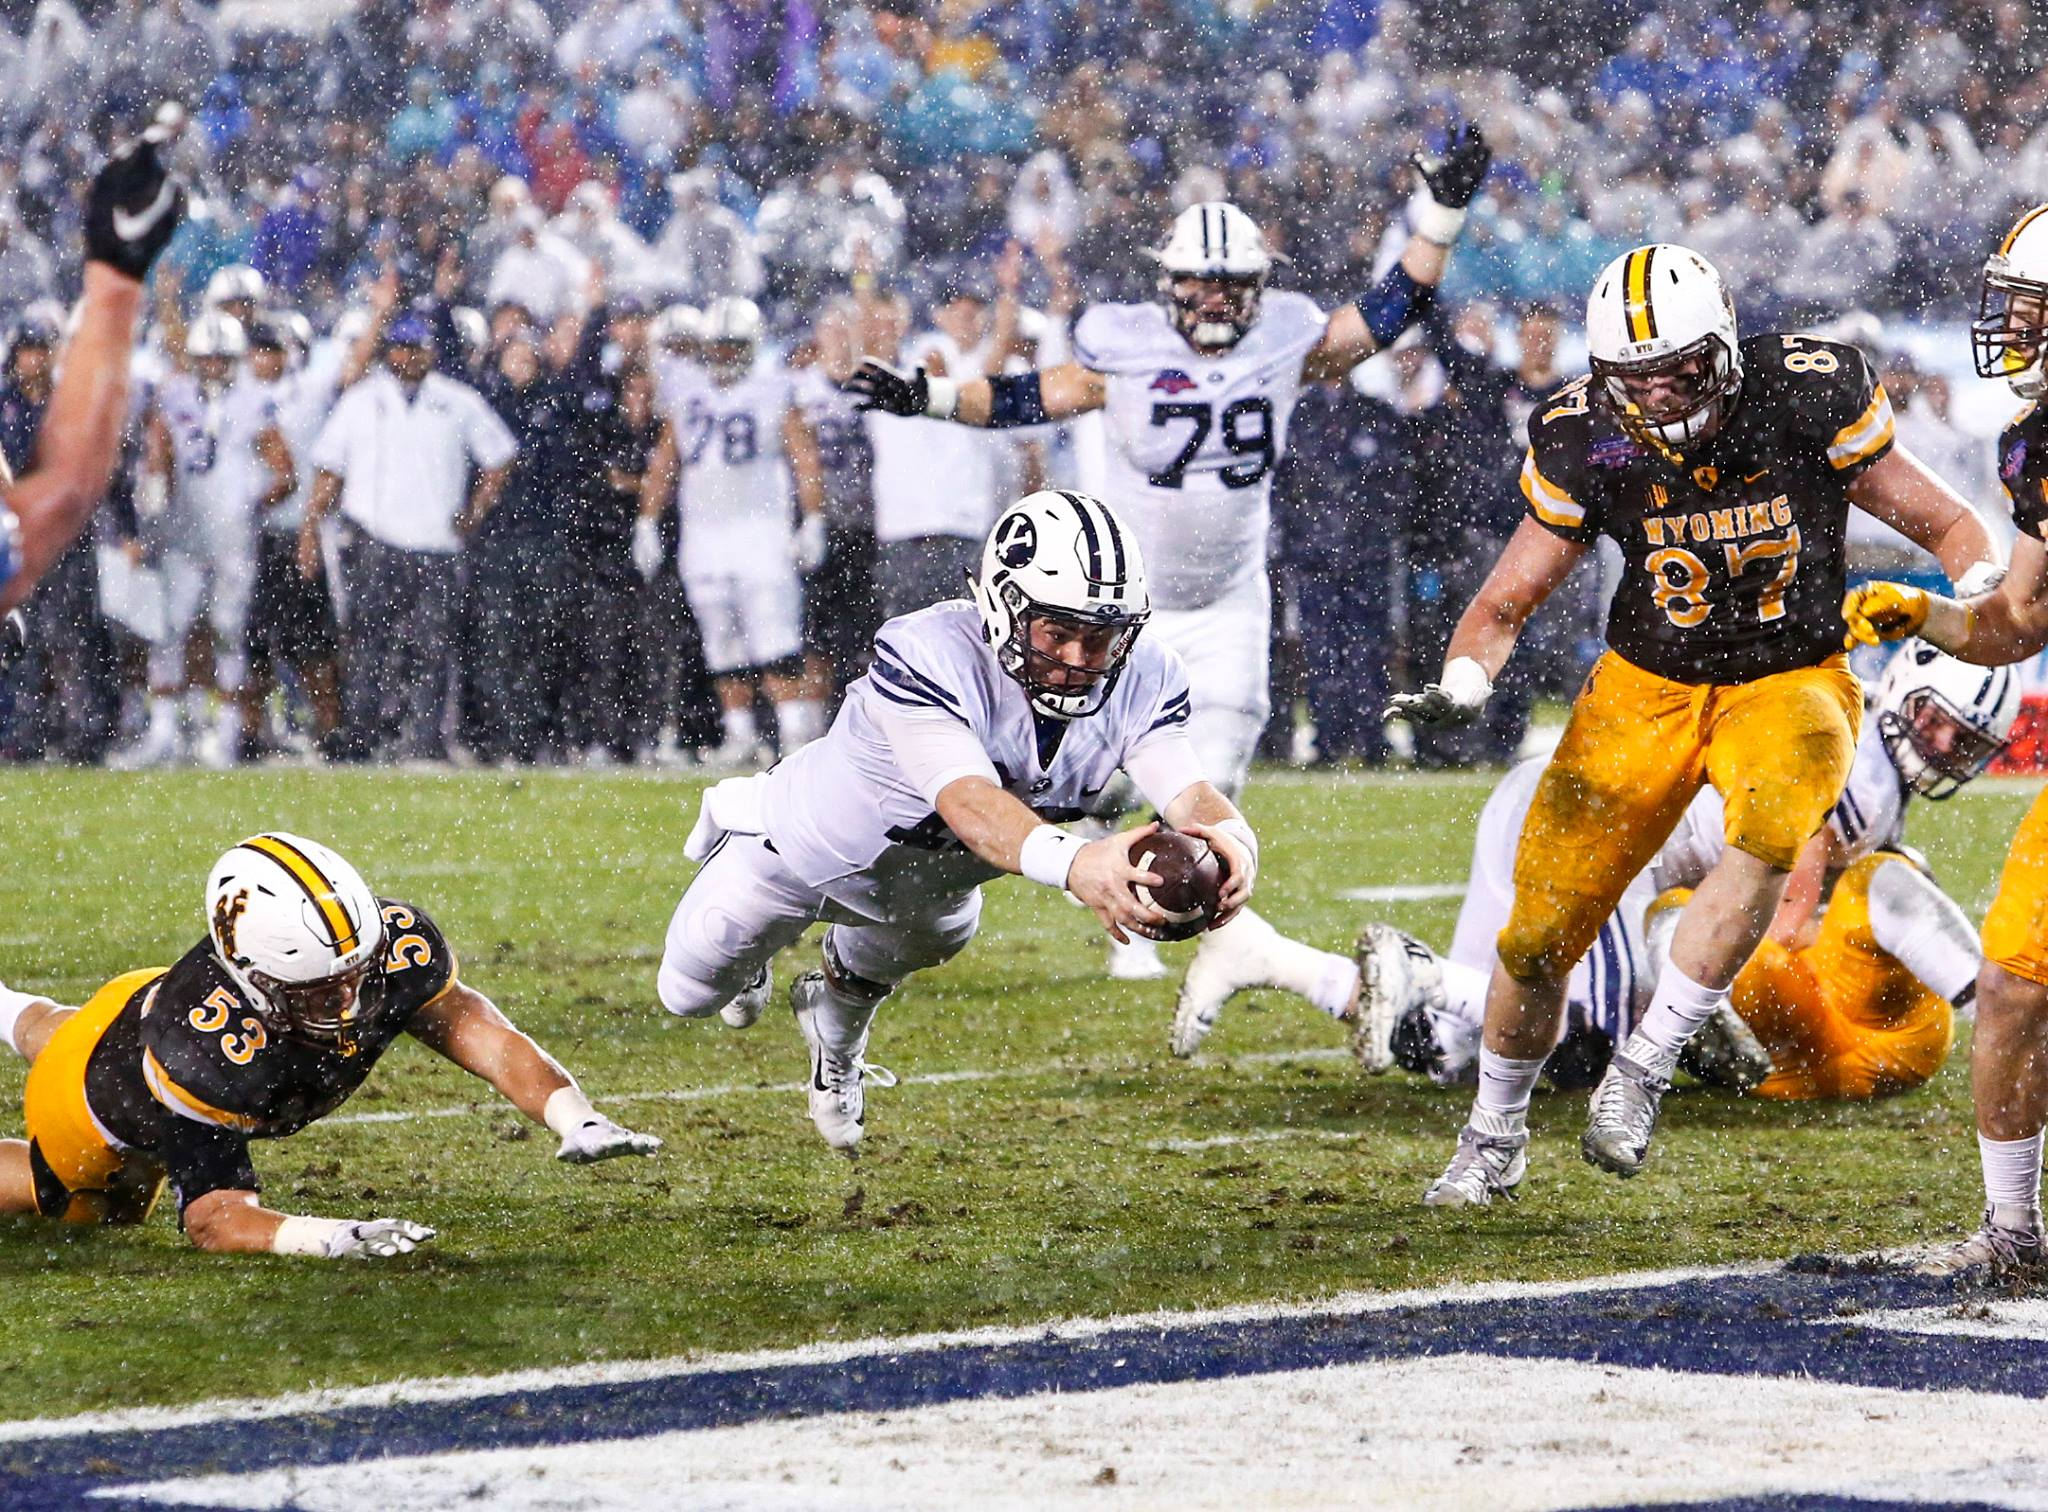 Tanner Mangum dives for a touchdown, BYU vs. Wyoming, San Diego, Cailf., Dec.21, 2016 | Photo by BYU Photo